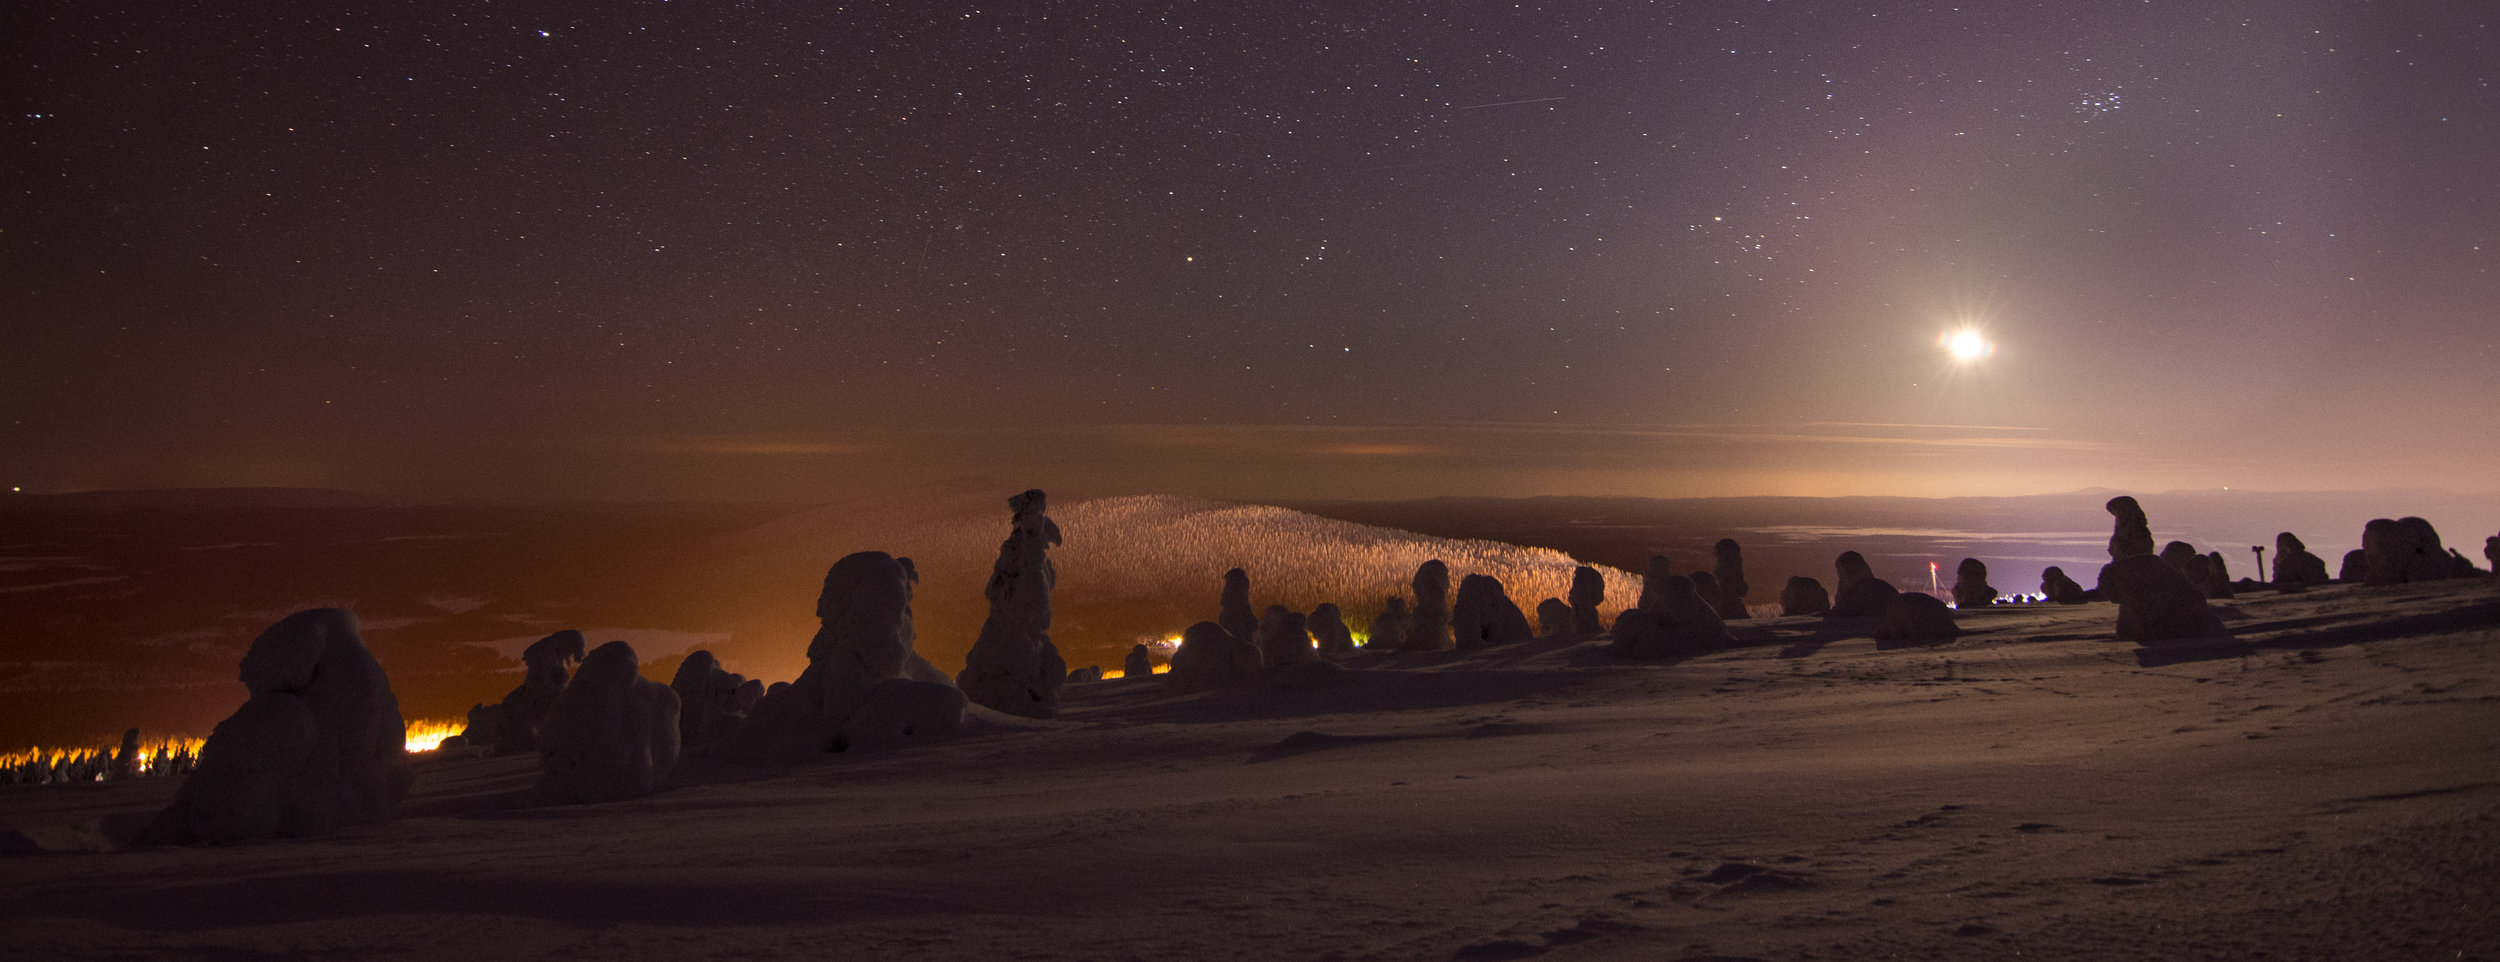 A full moon combined with light pollution from the ski hill makes for some dramatic lighting.